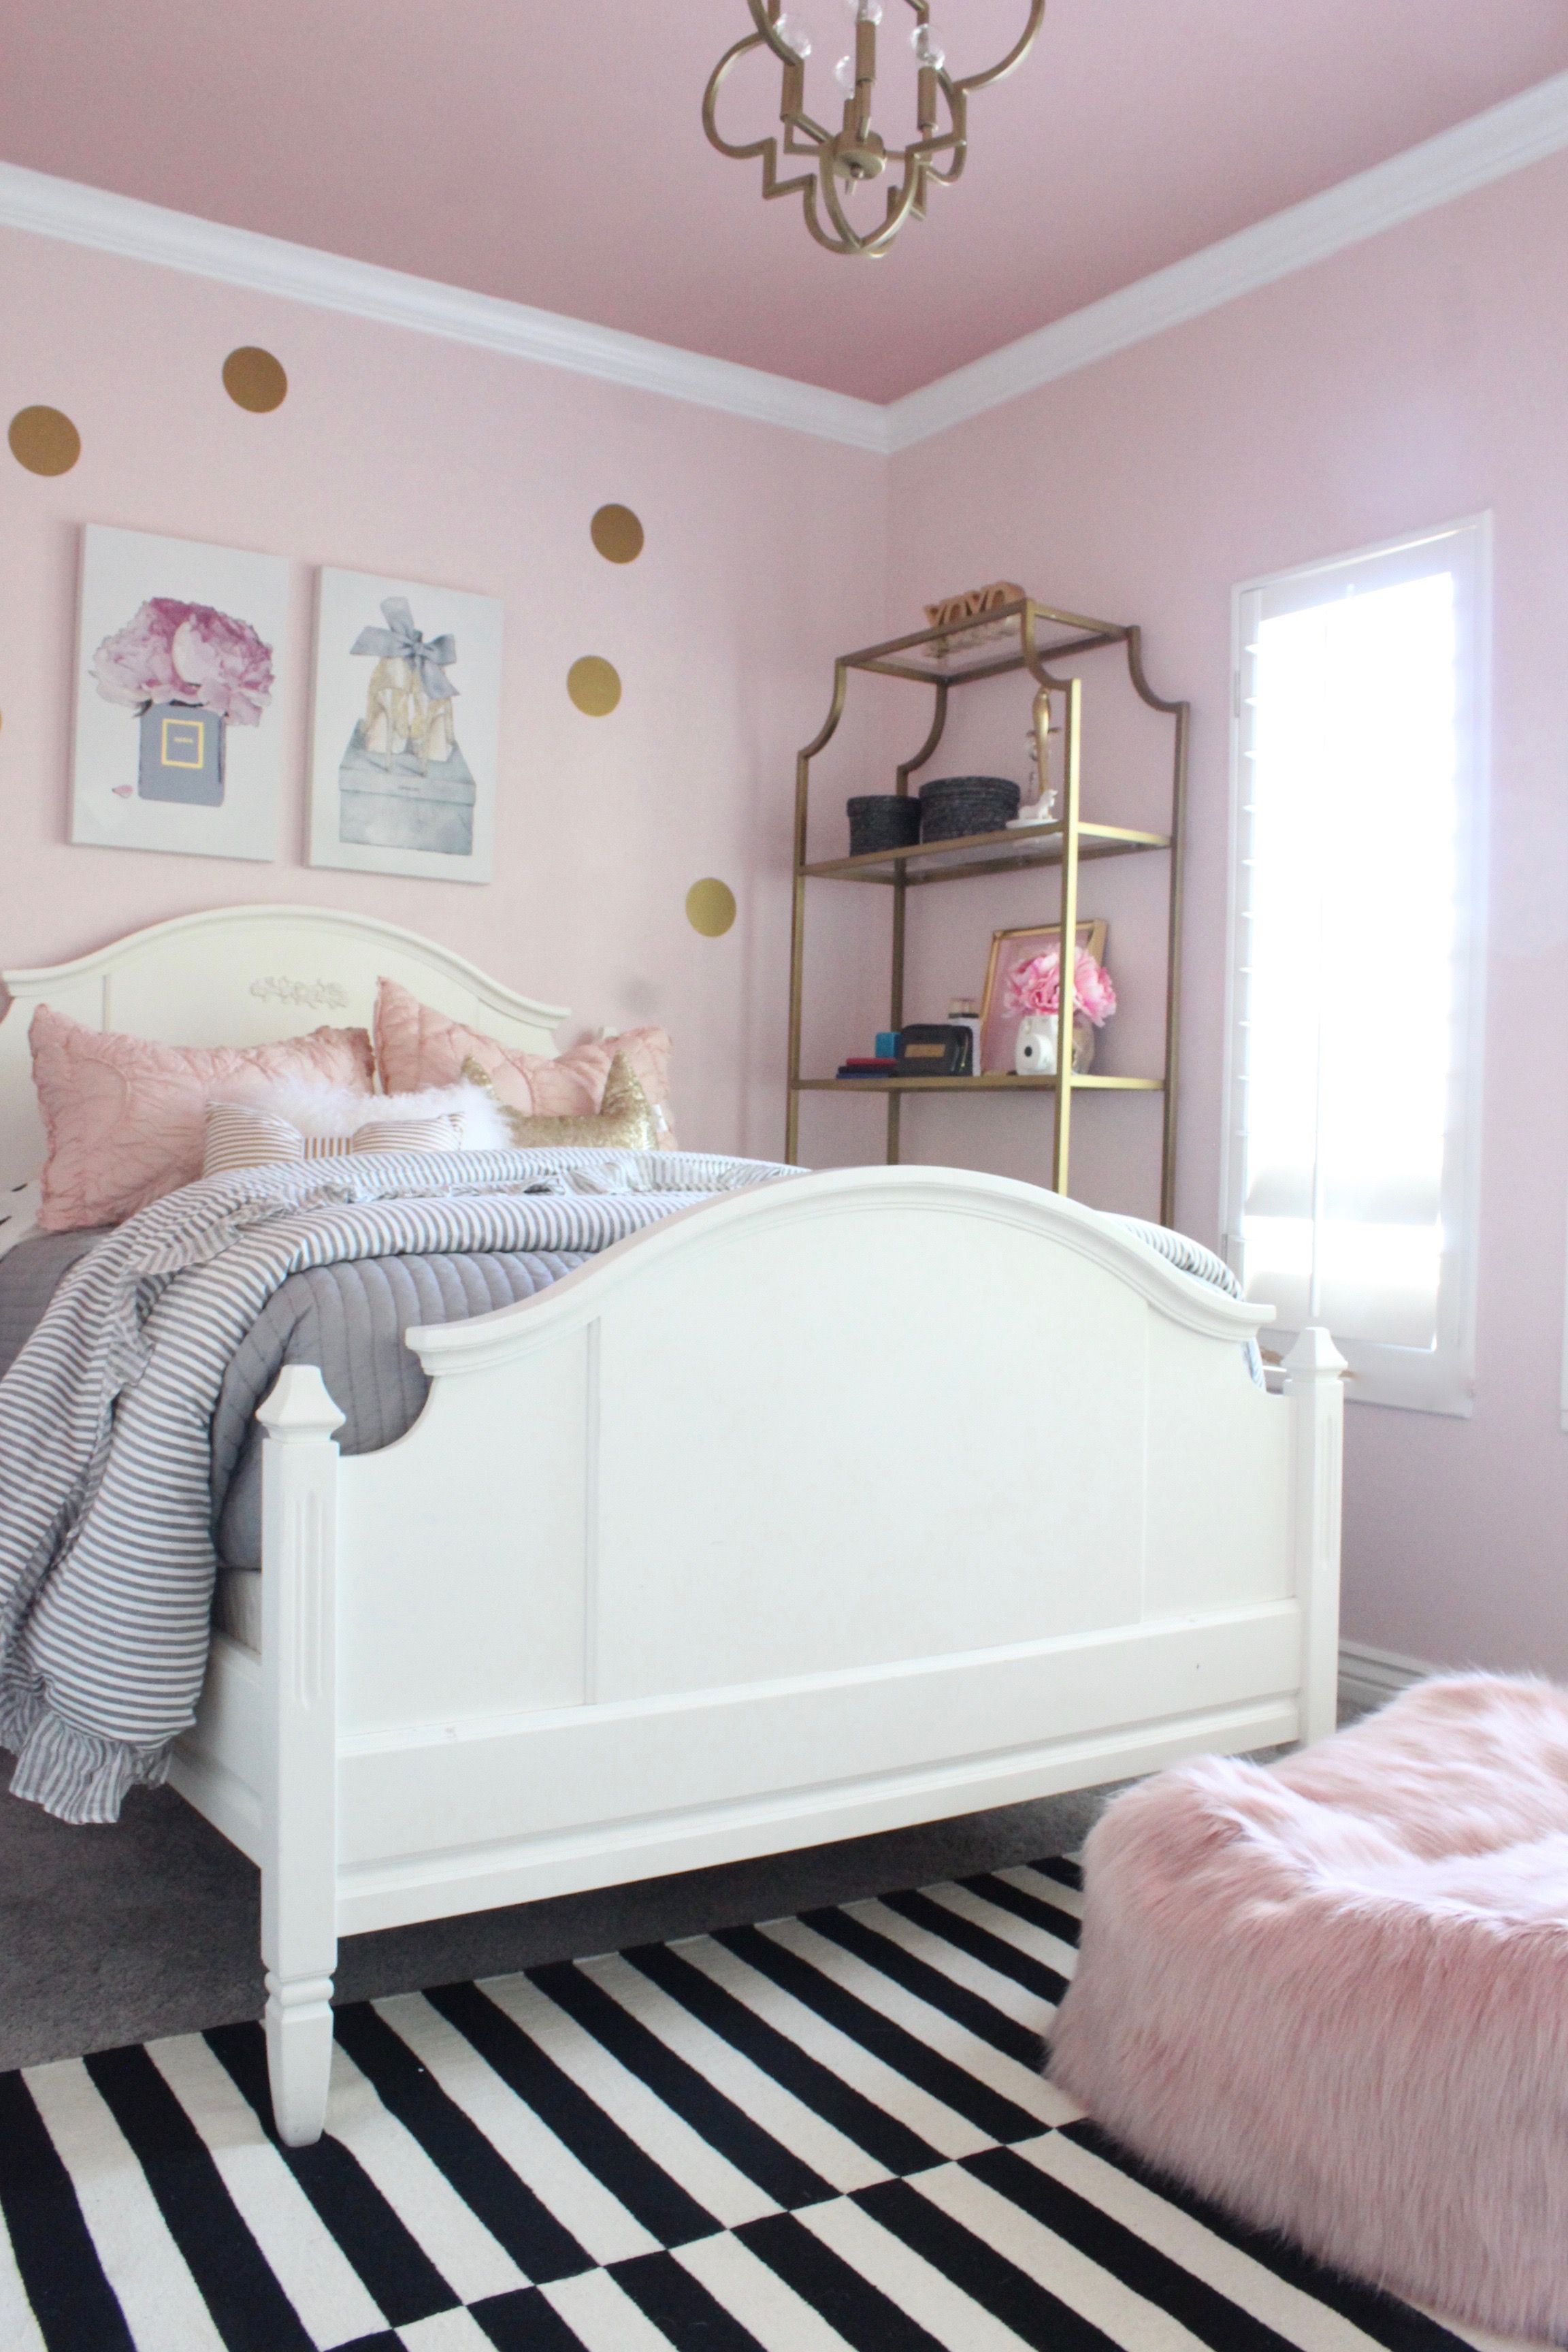 Blush Rose And Gold Tween Bedroom Ideas Pink Bedroom Decor Tween Bedroom Decor Bedroom Themes